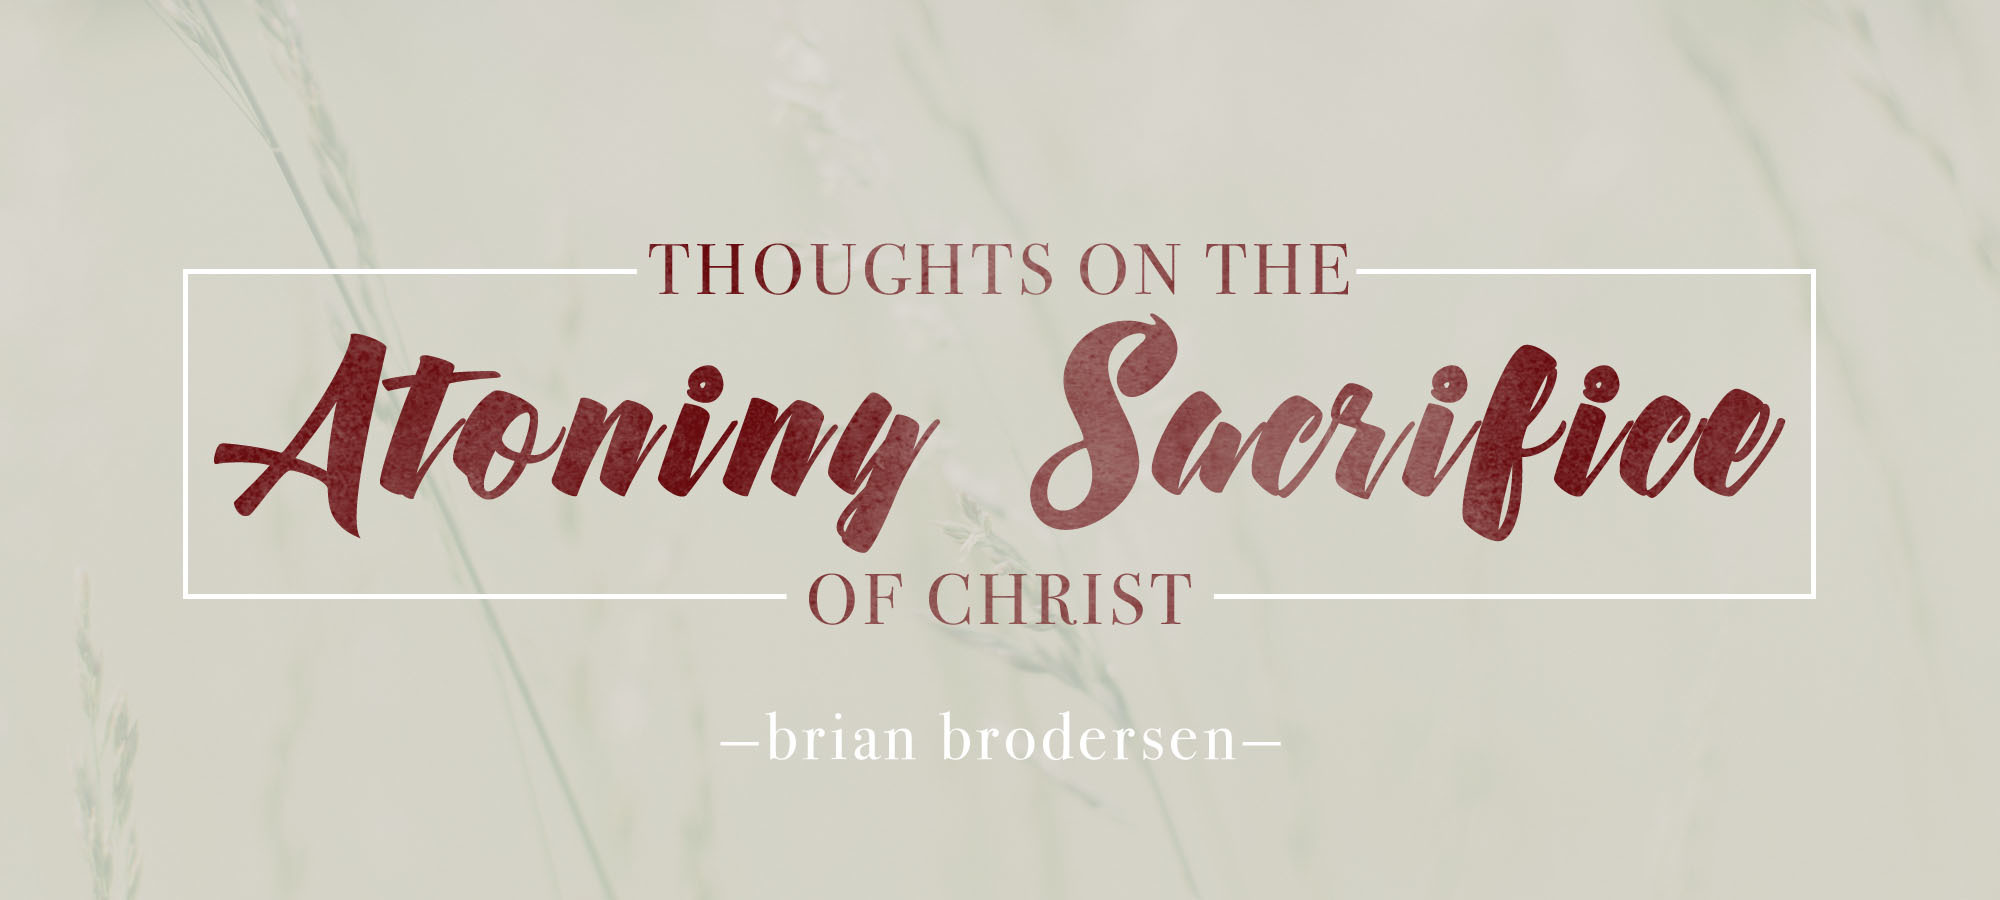 Thoughts on the Atoning Sacrifice of Christ